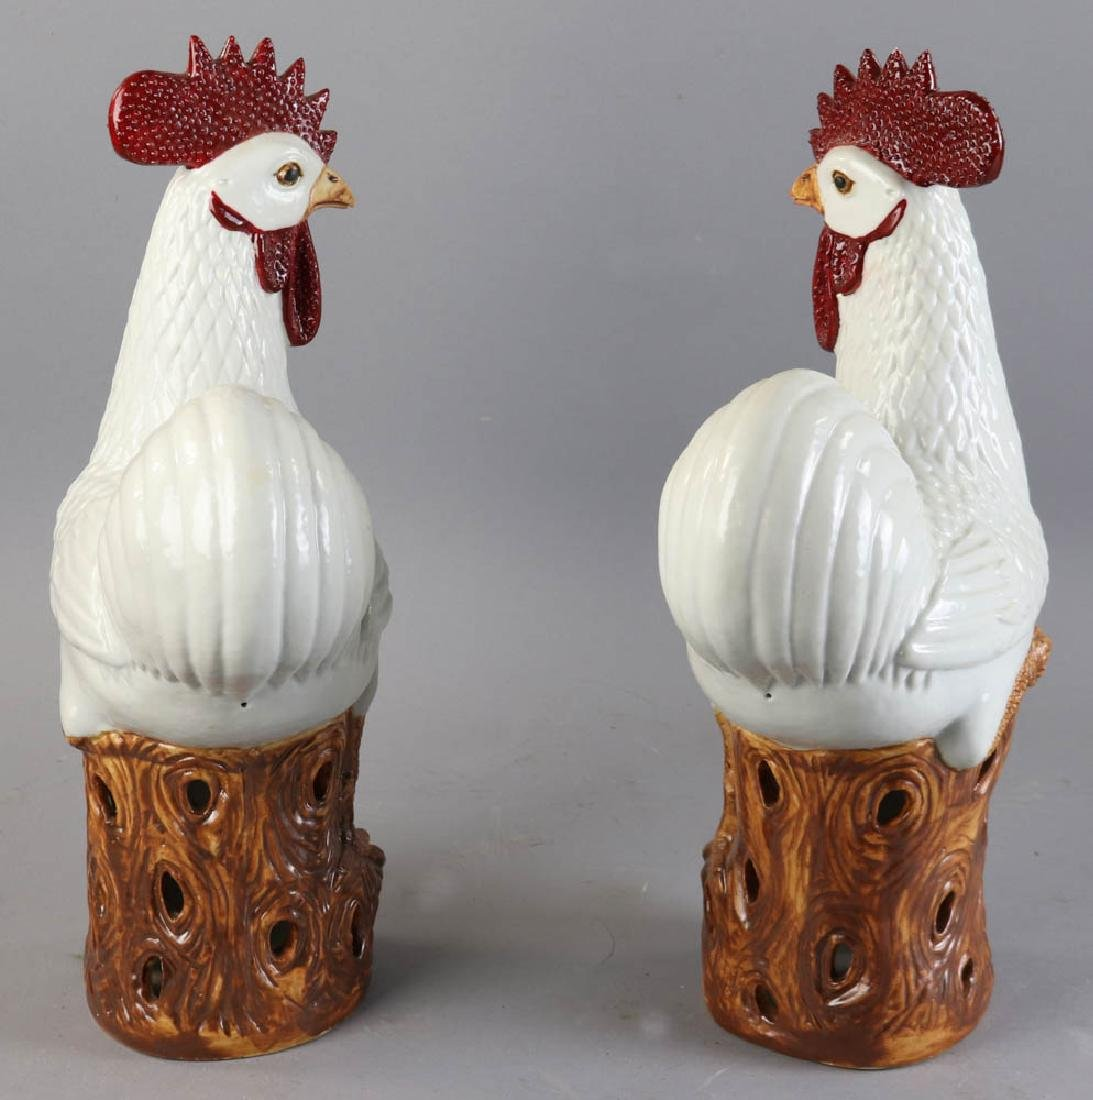 Chinese Porcelain Roosters - 3